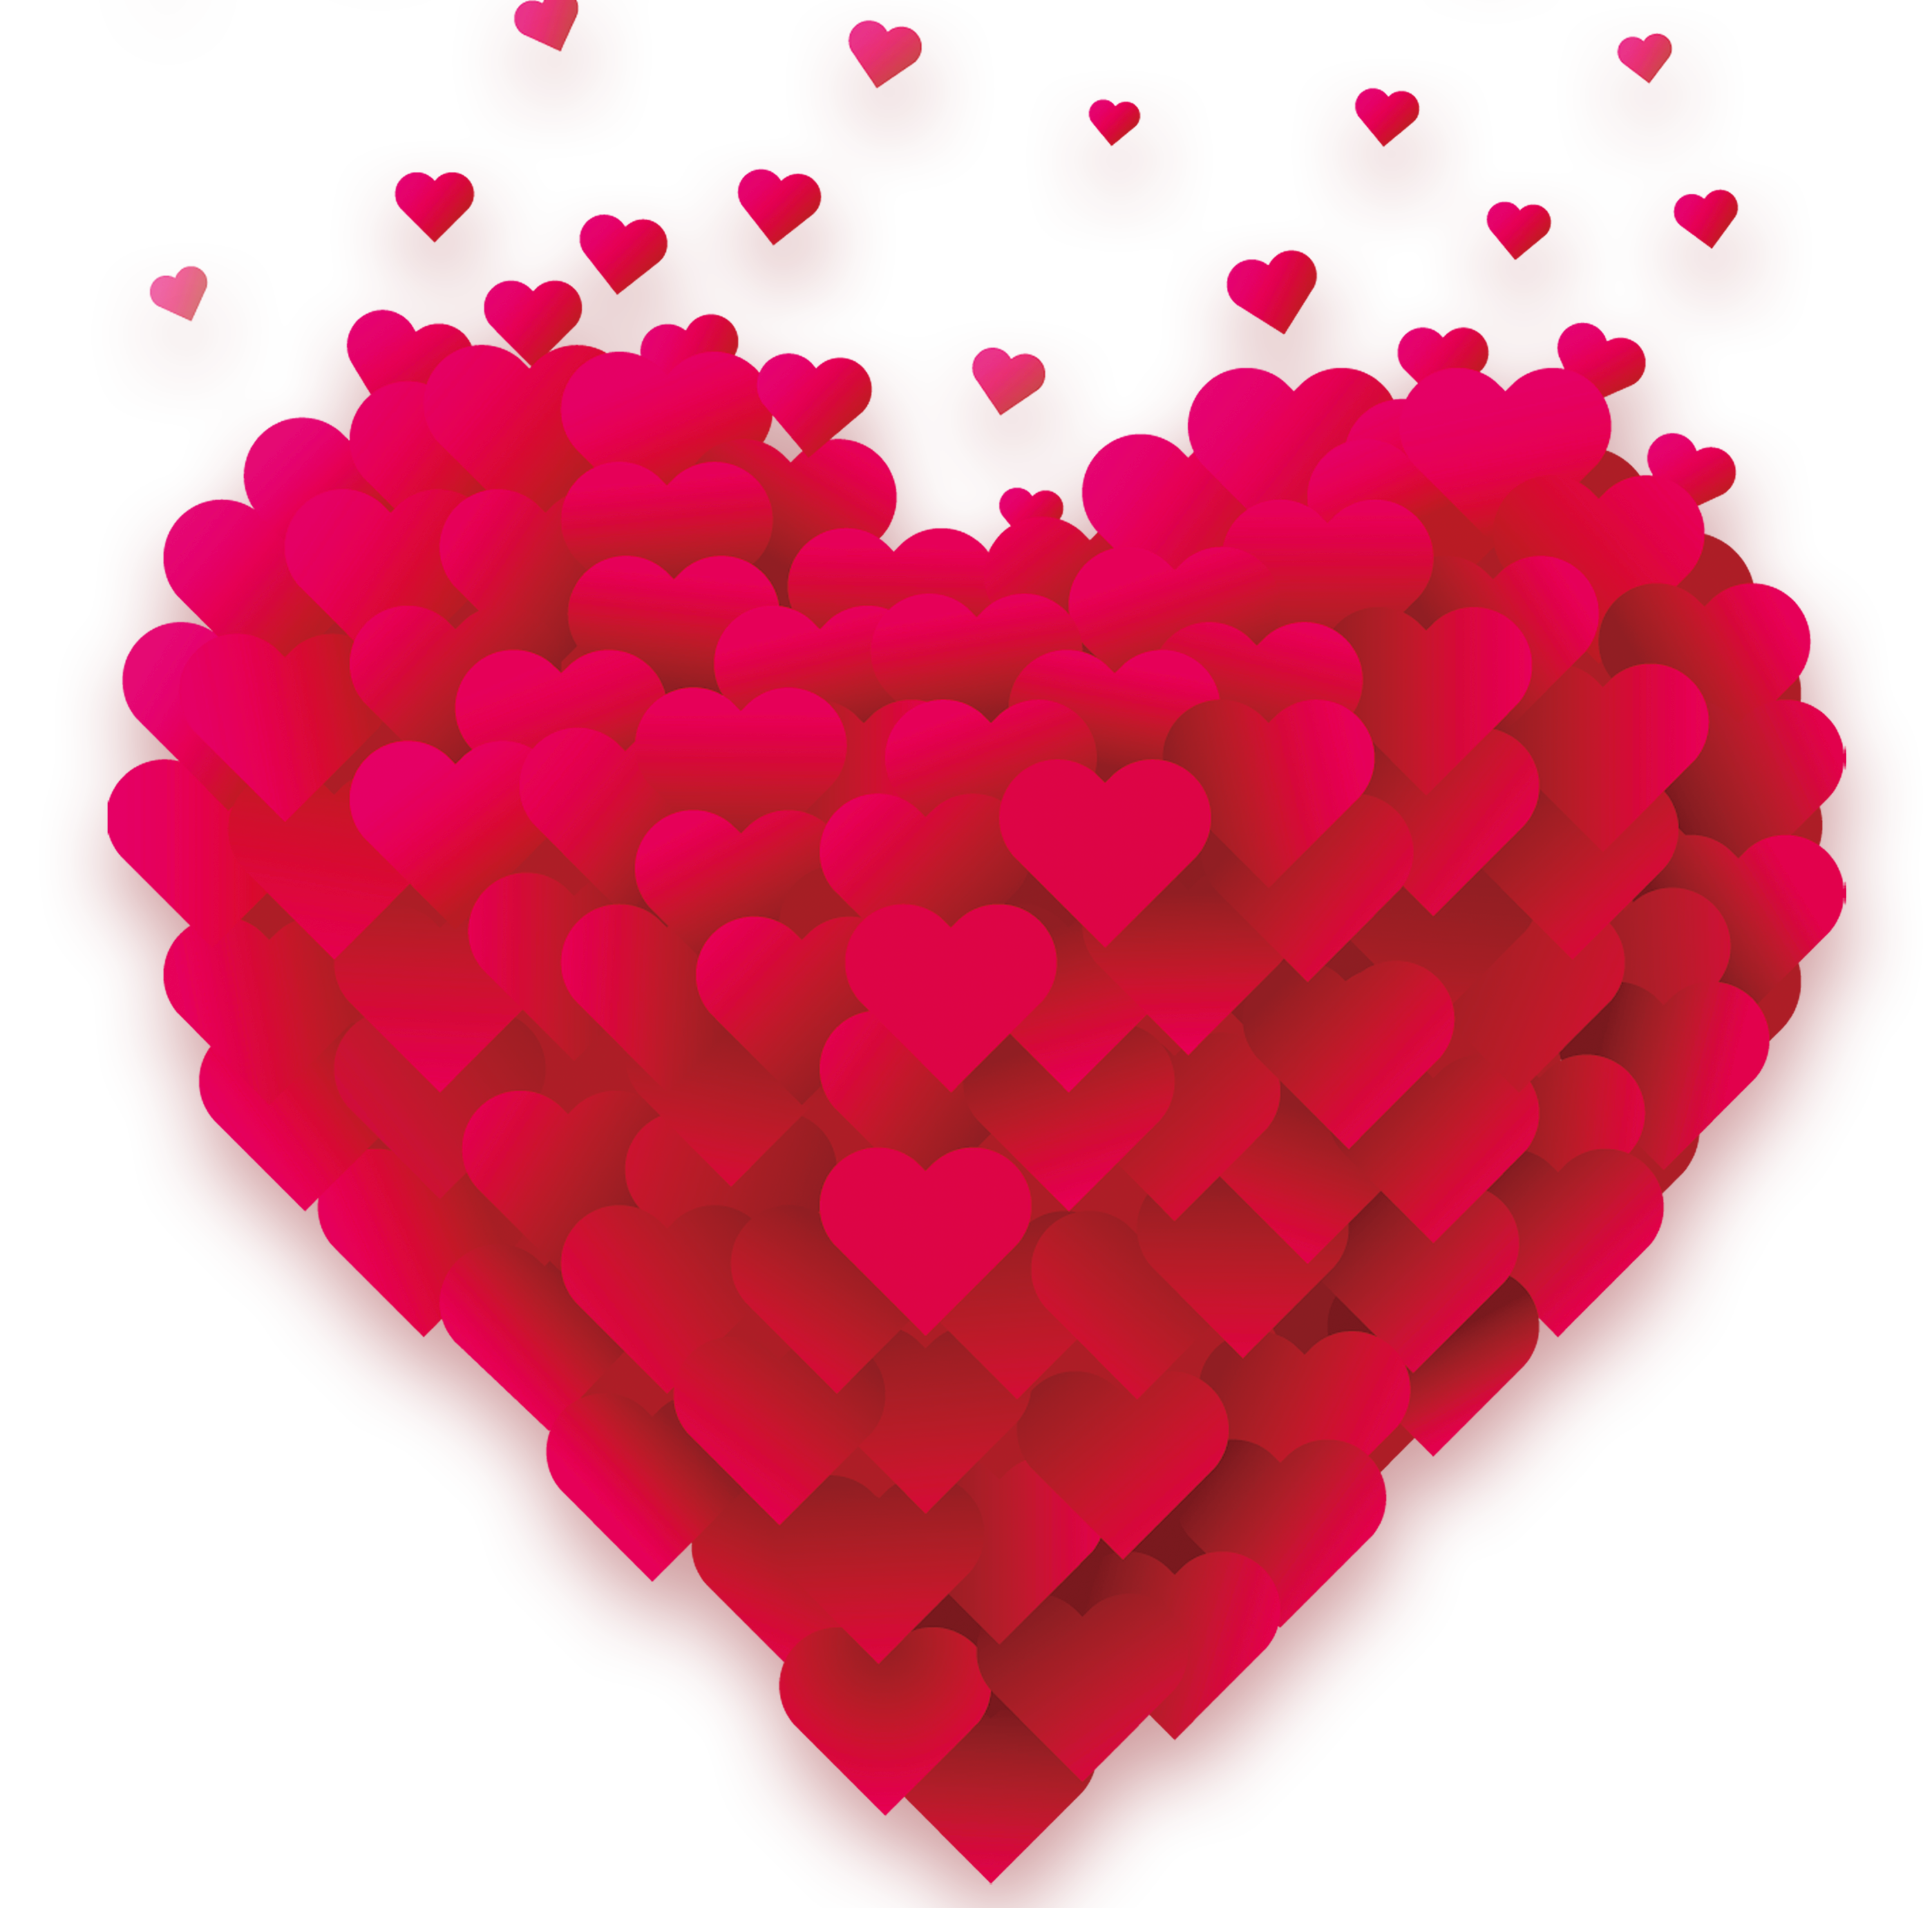 Heart Love Valentines Whatsapp Day Happiness PNG Image